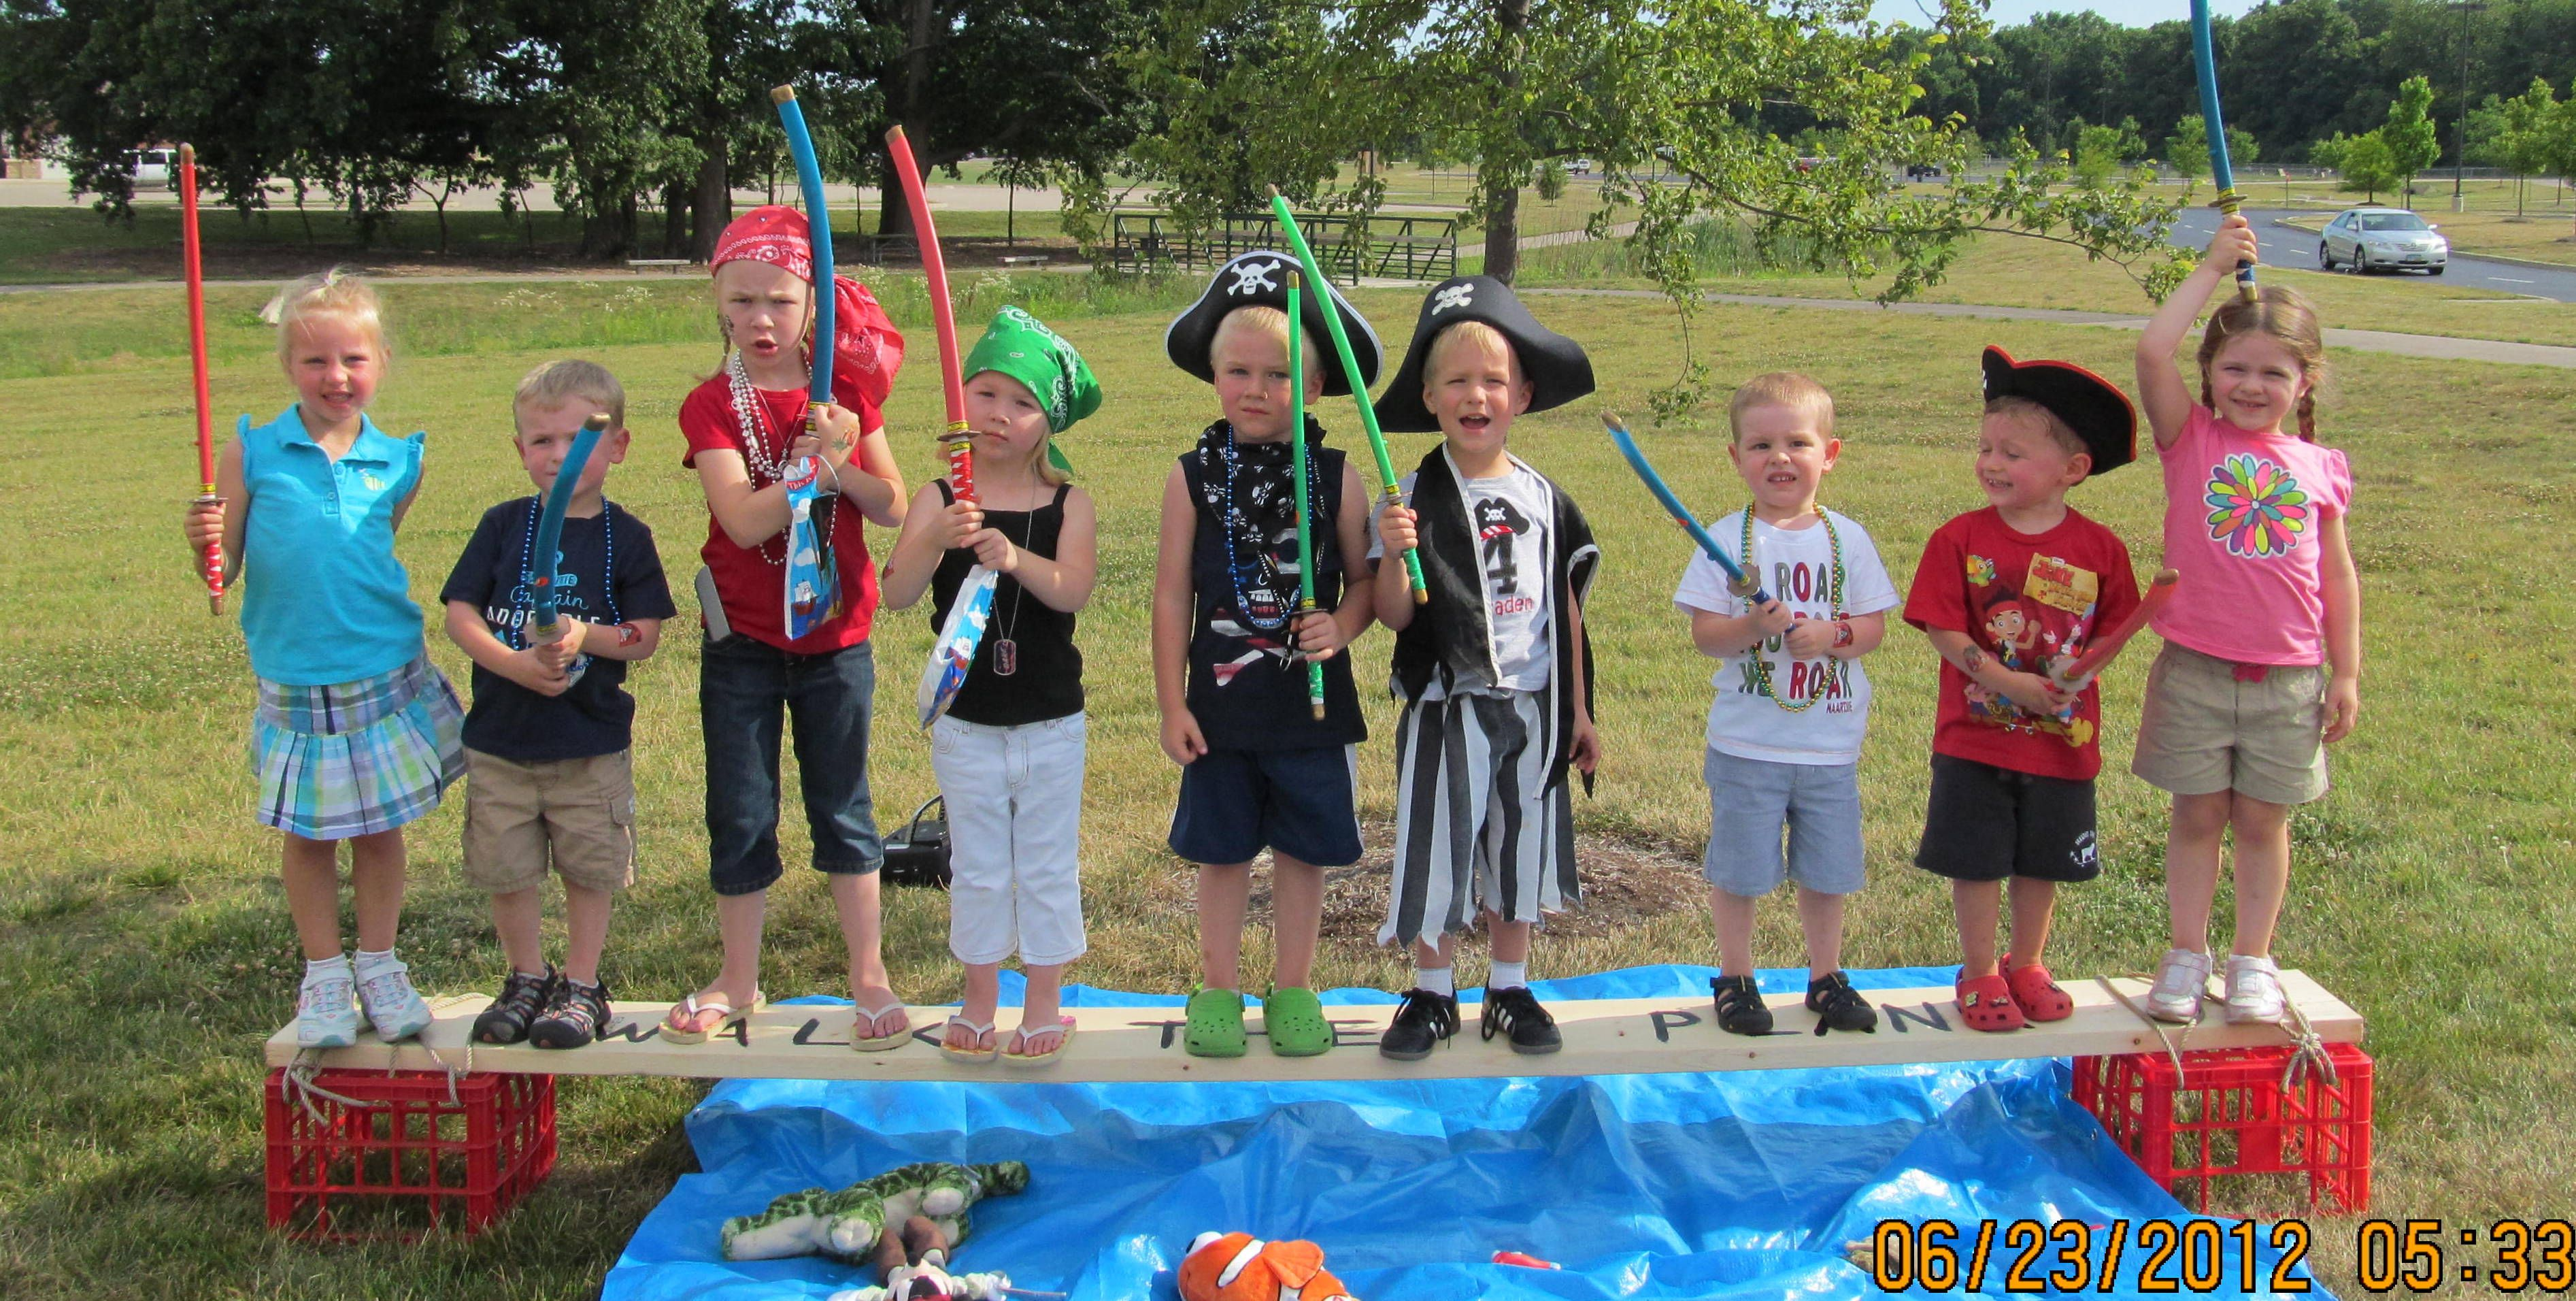 Pirate Birthday Party  http://doudican.blogspot.com/2012/07/back-to-pirate-party.html